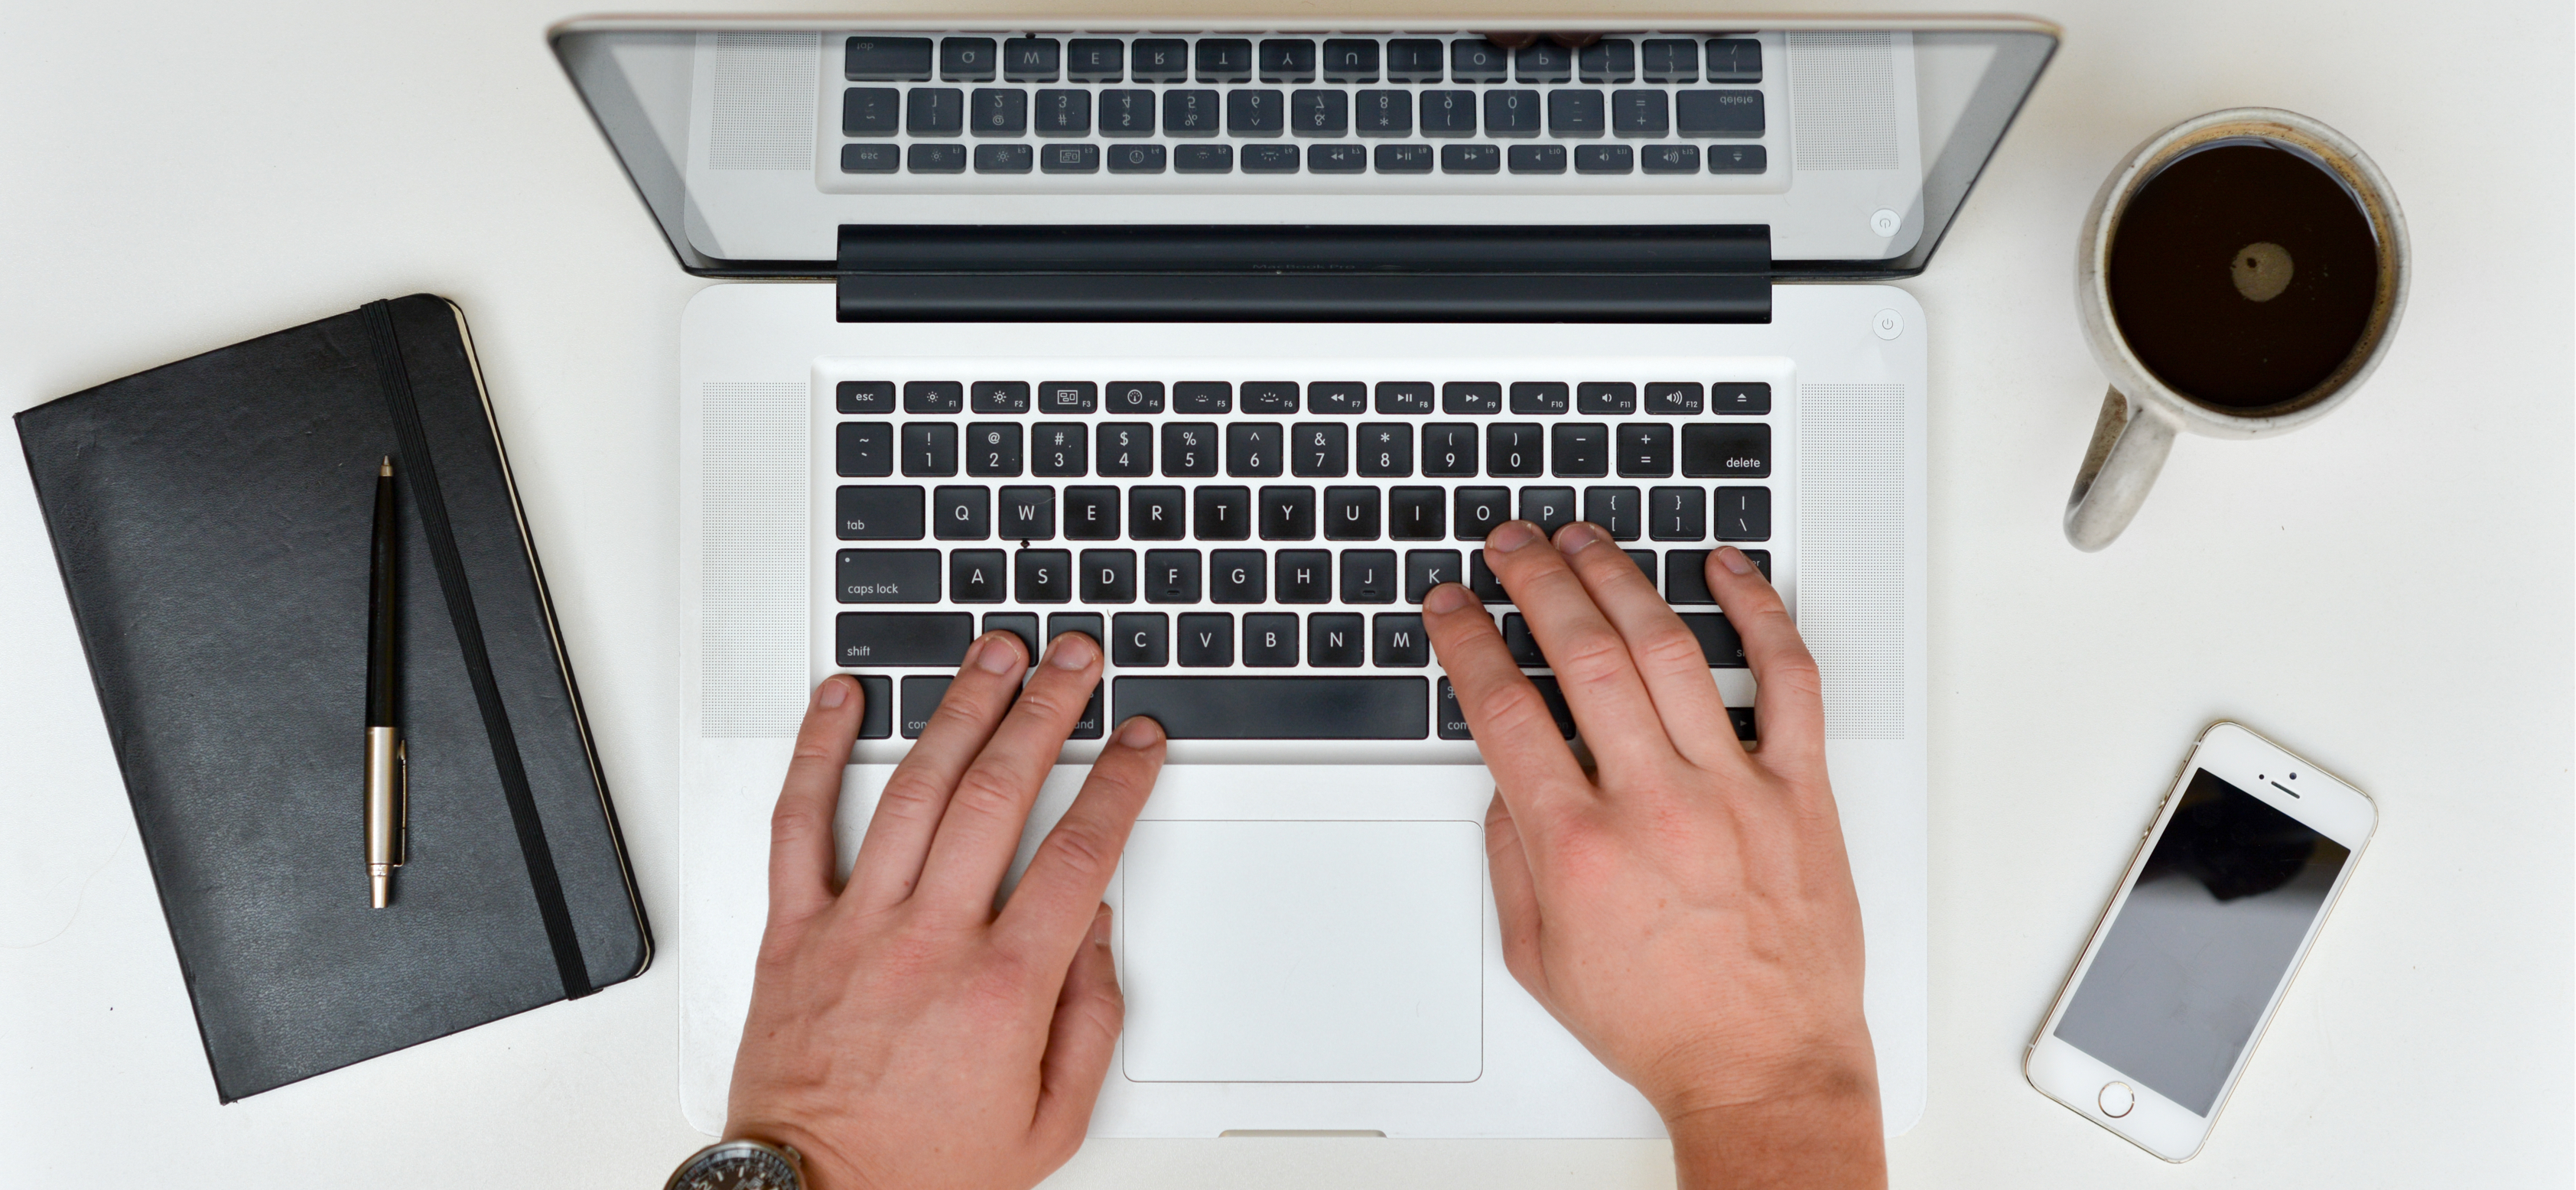 Hands typing on Mac